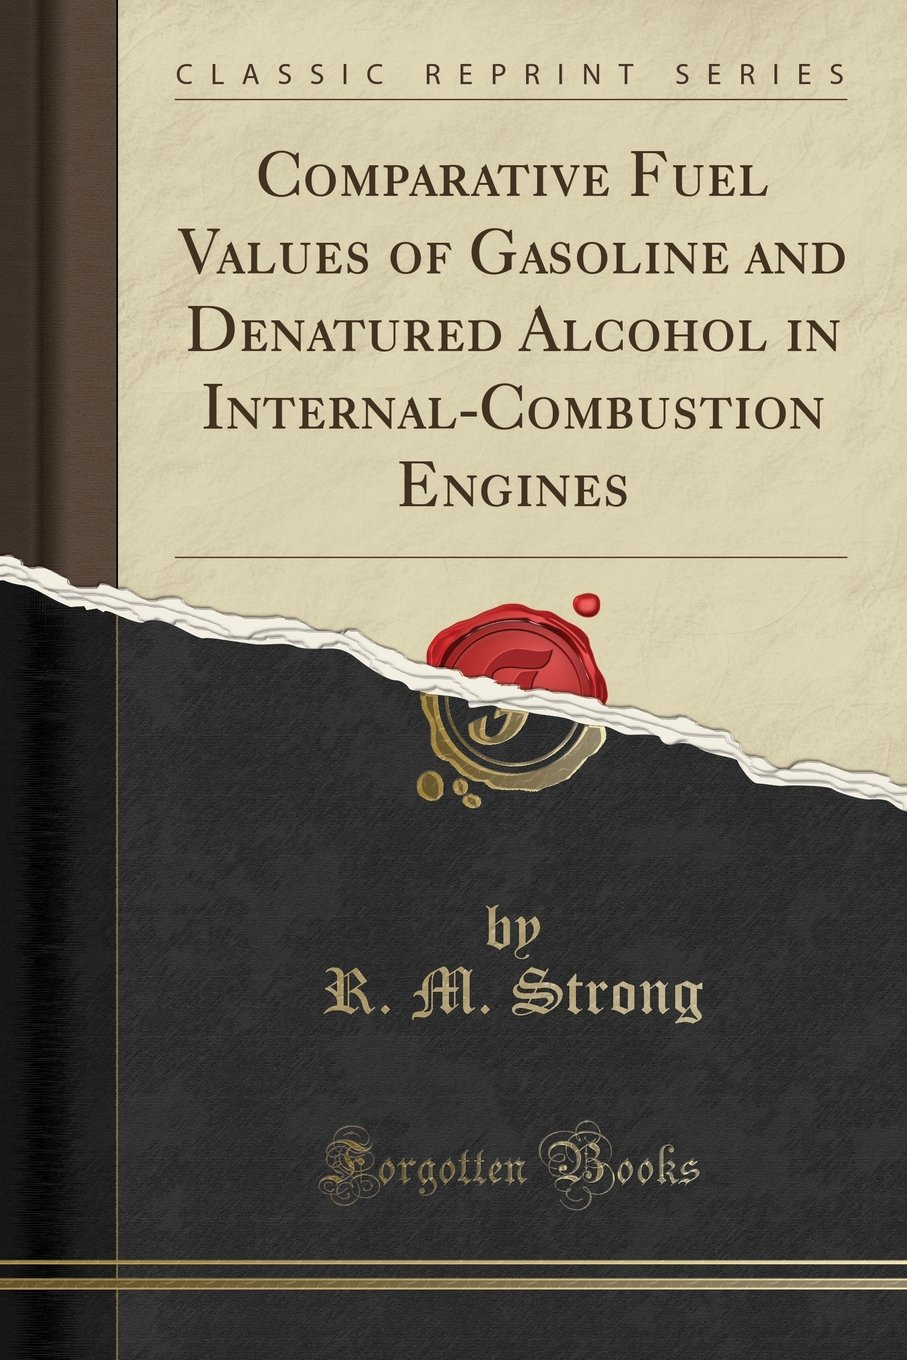 comparative-fuel-values-of-gasoline-and-denatured-alcohol-in-internal-combustion-engines-classic-reprint